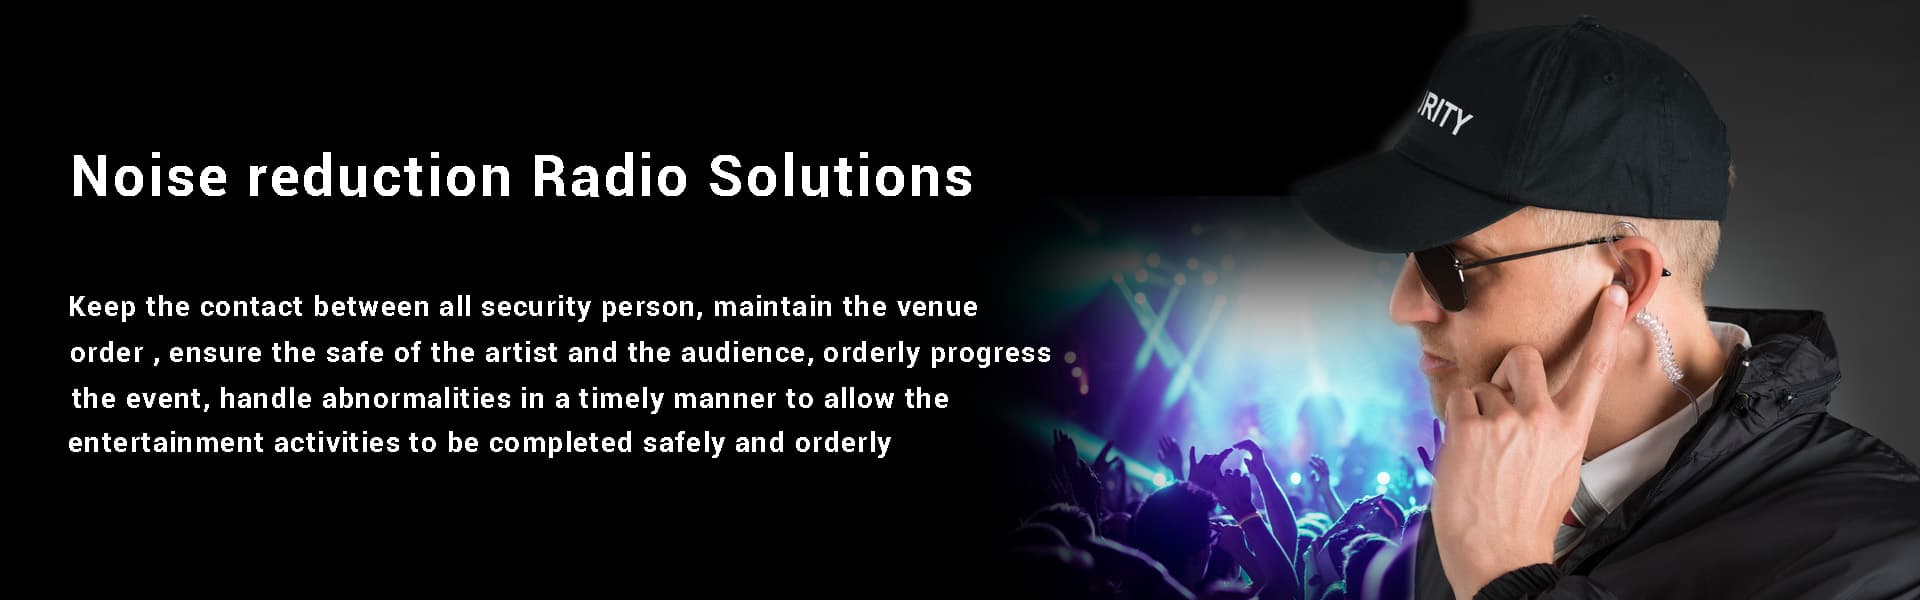 retevis-radio-solutions-Entertainment-radio-solutions-banner